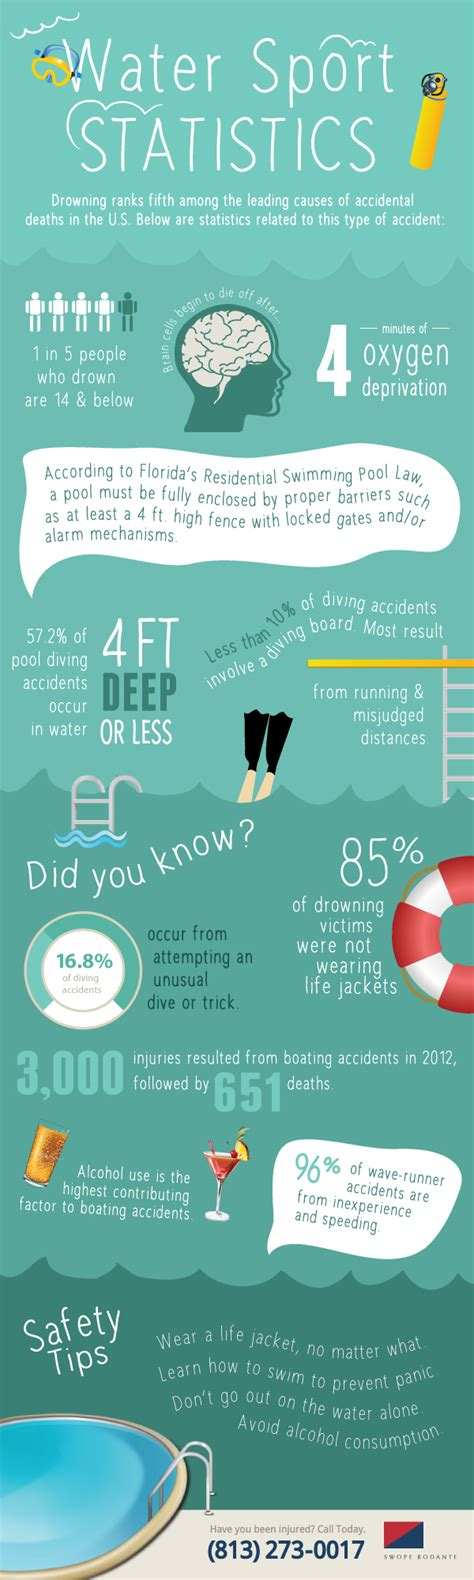 Pools And Diving Accident Injury Statistics & Infographic